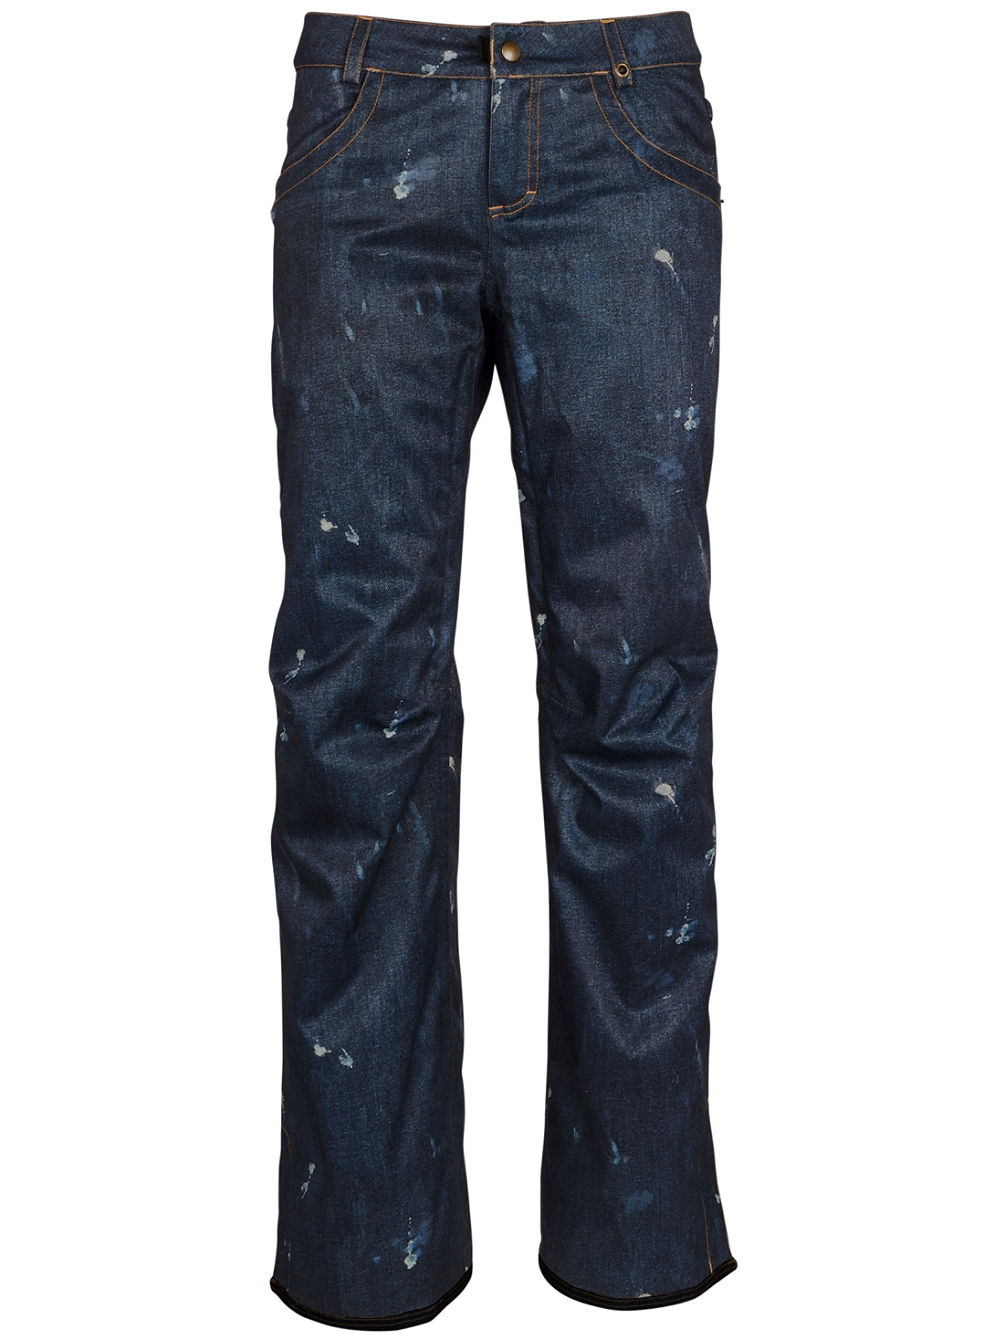 0a509d74 Buy 686 Deconstructd Denim Insulated Pants online at Blue Tomato